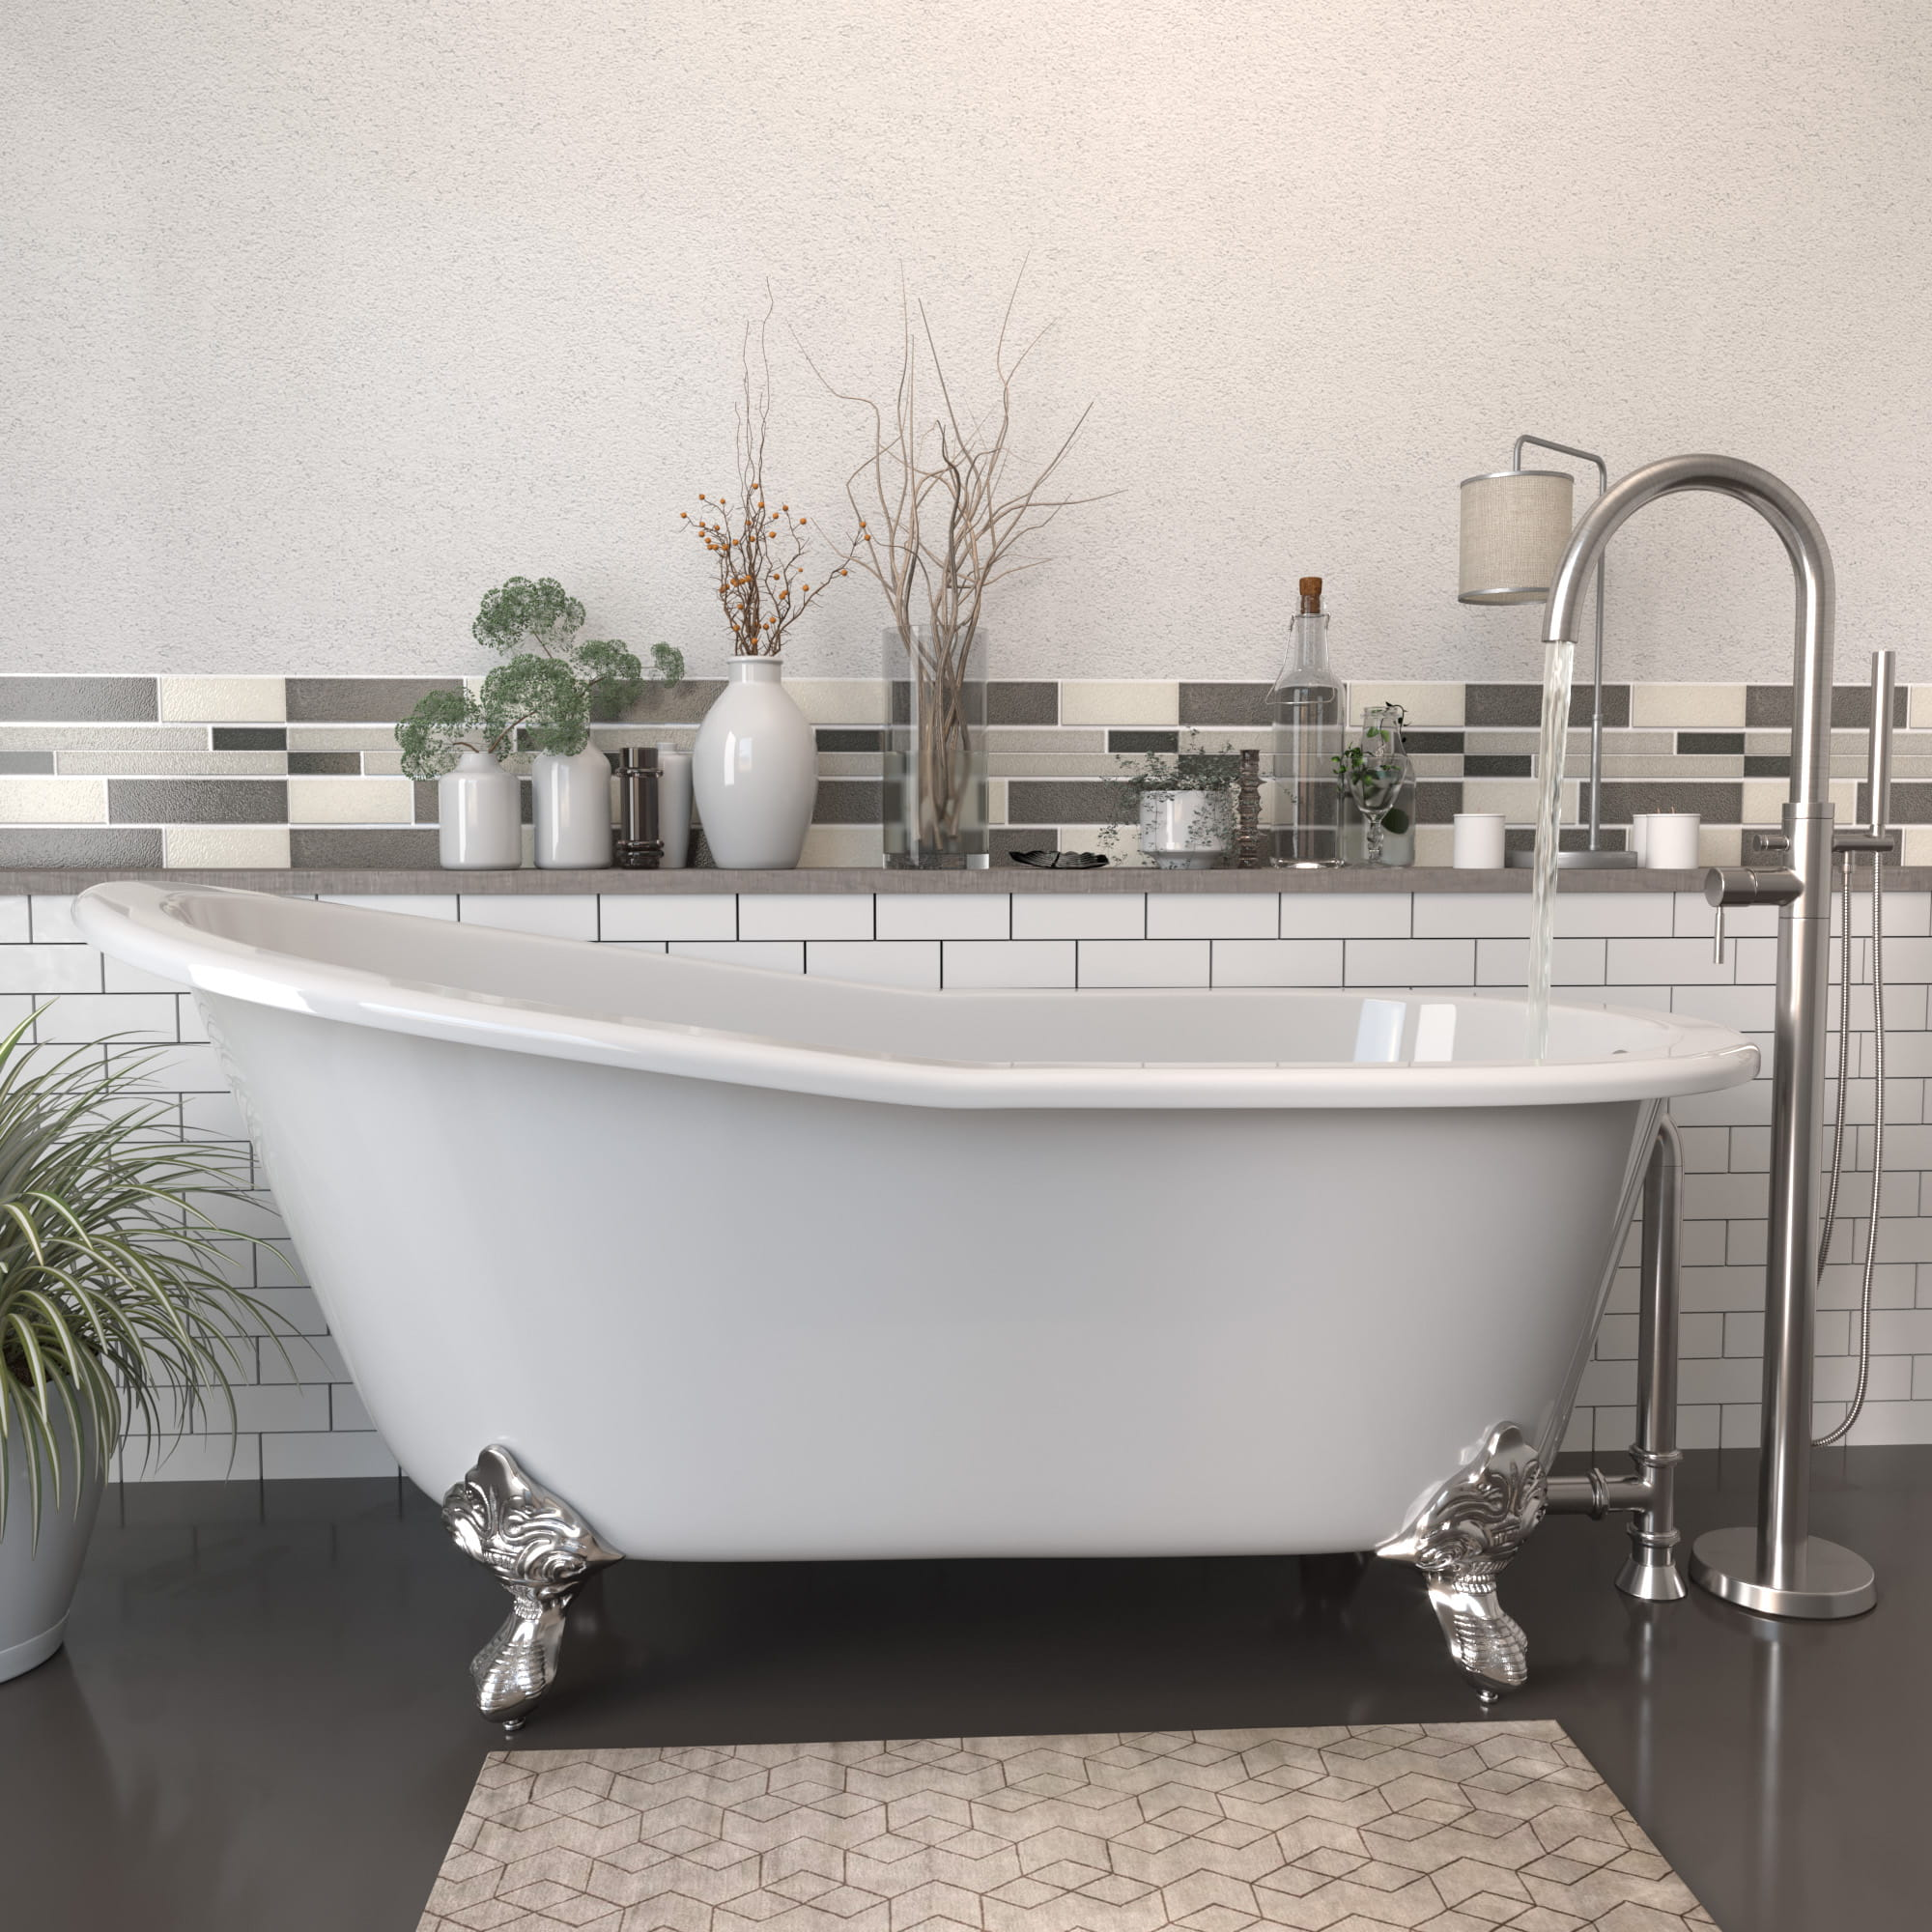 """Cast Iron Slipper Clawfoot Tub 67"""" X 30"""" with no Faucet Drillings and Complete Polished Chrome Modern Freestanding Tub Filler with Hand Held Shower Assembly Plumbing Package"""